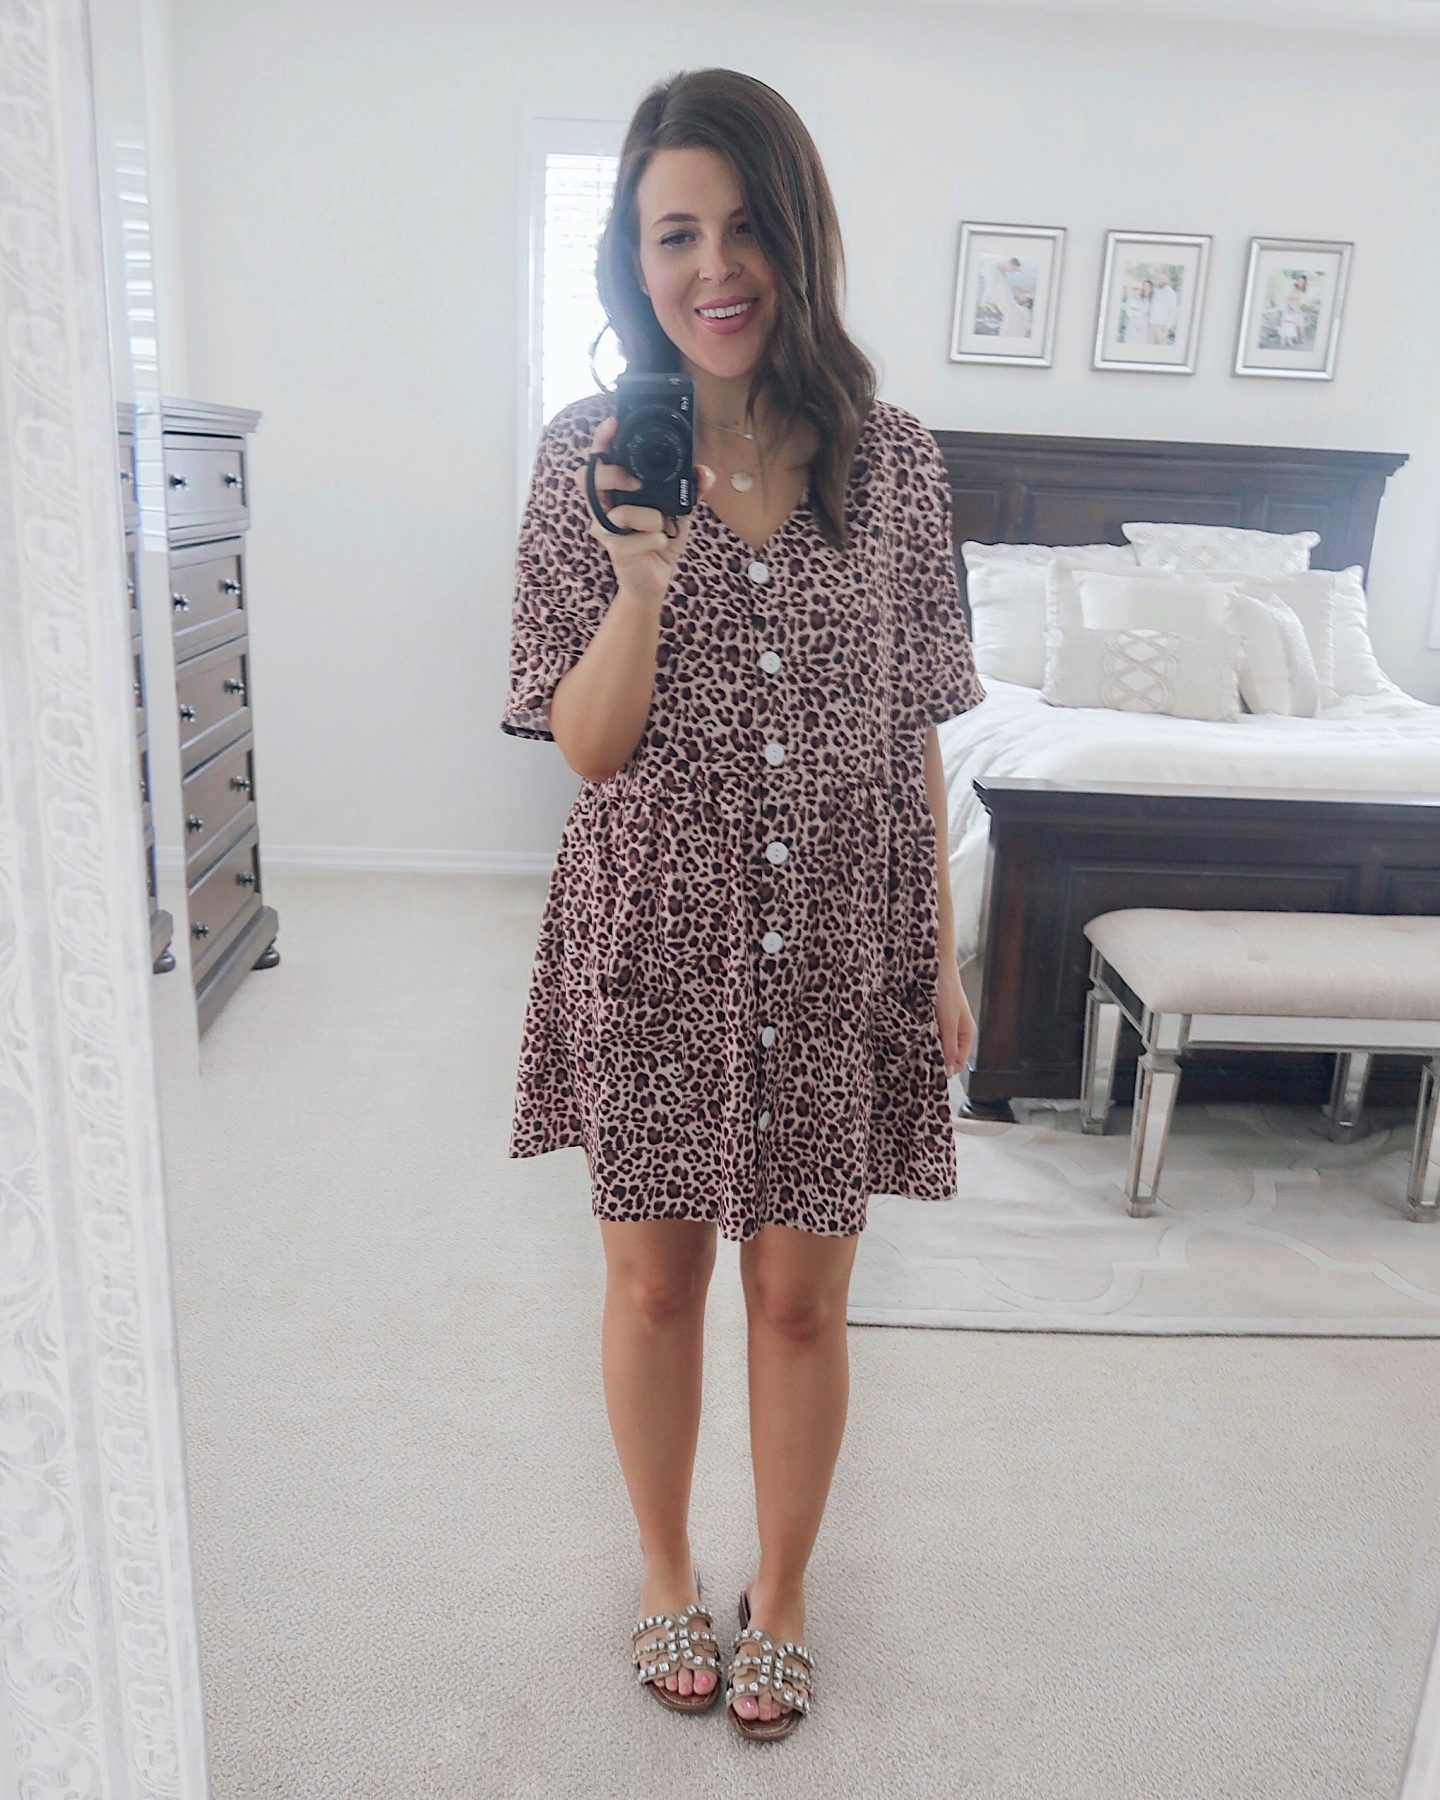 amazon try-on brie_bemis_rearick_amazon_leopard_button_down_loose_swing_dress_with_pockets_3